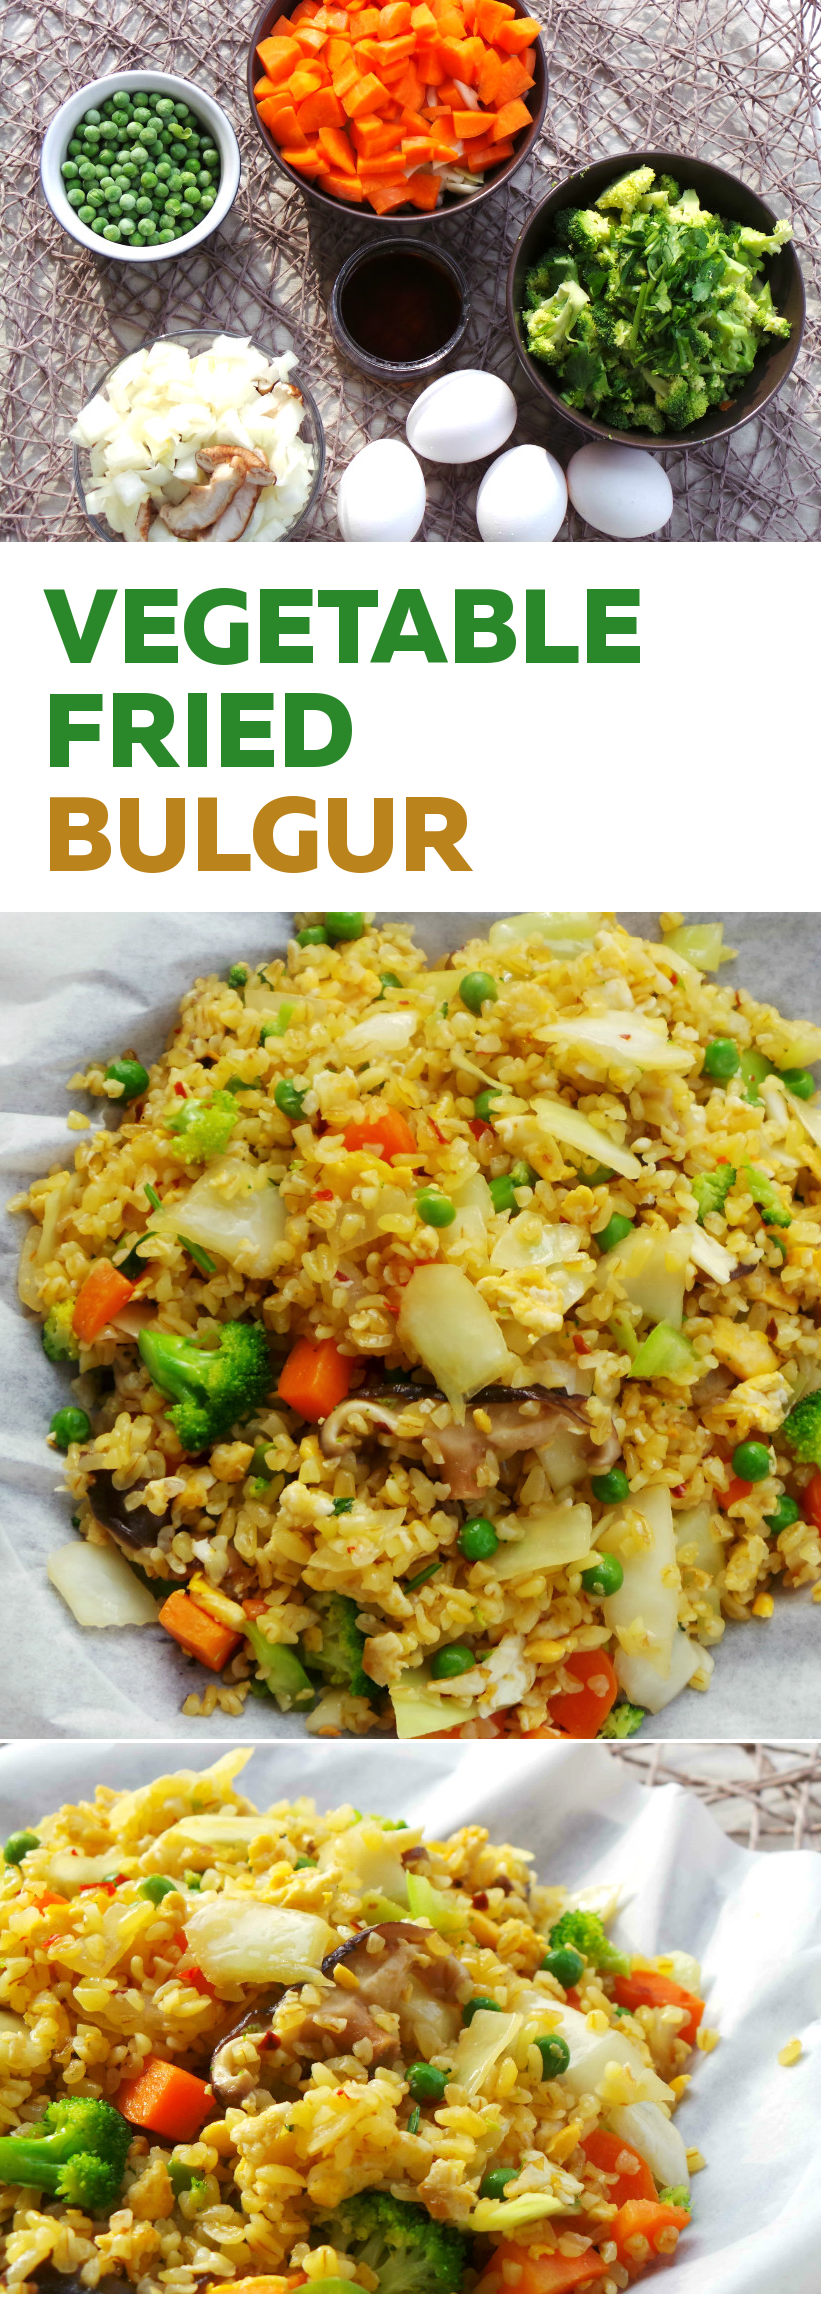 Healthier, More High-Fiber version of vegetable fried rice! This bulgur recipe is so great you won't be able to stop eating it! Tasty, healthy and easy vegetable fried rice recipe, ahem...bulgur.